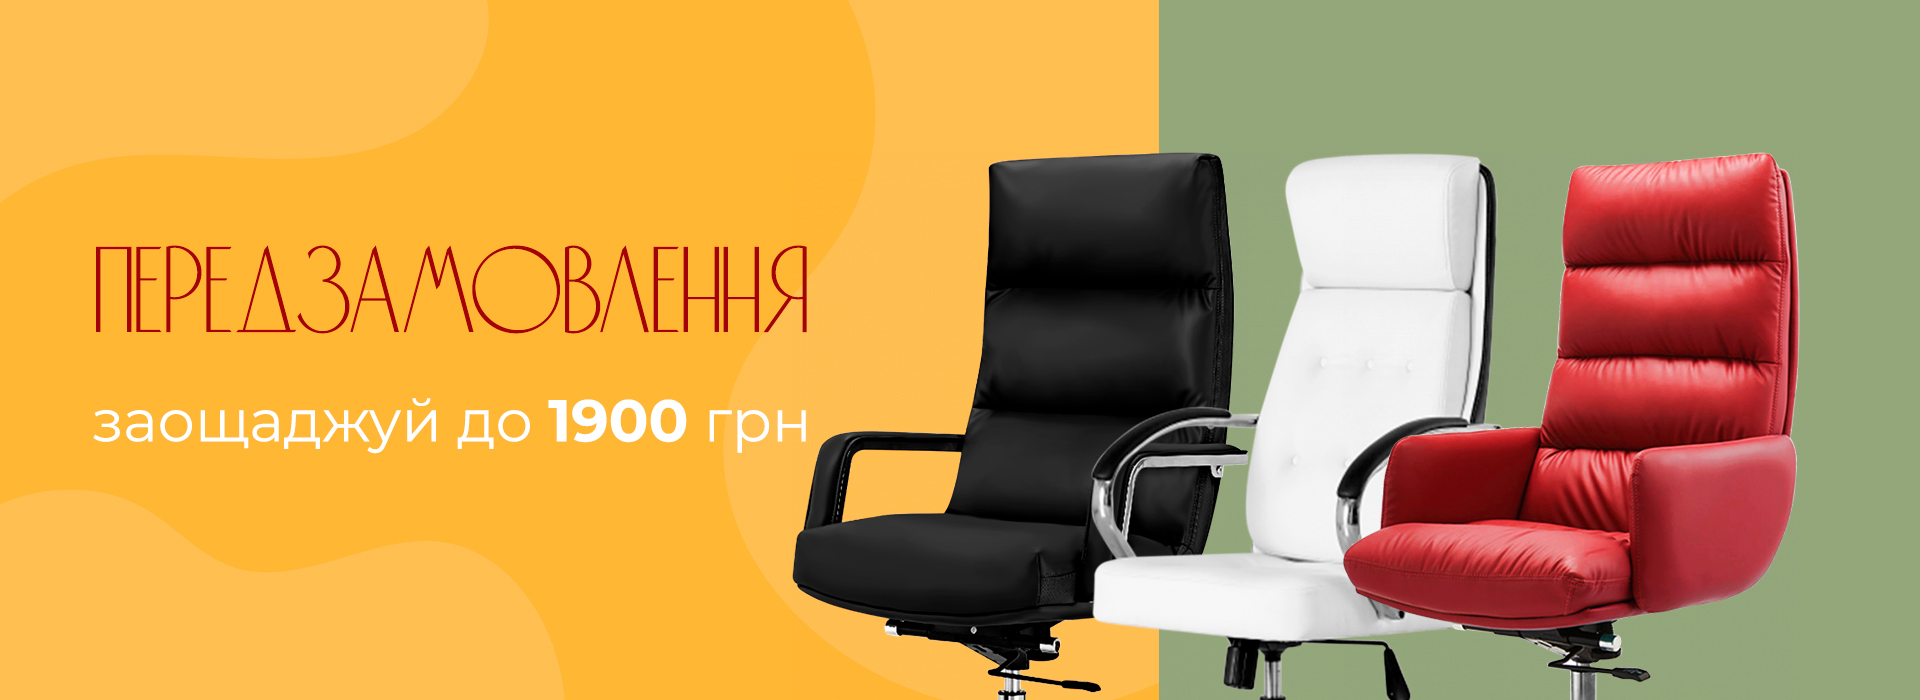 Stock! Big pre-order and big discounts on GT Racer chairs!